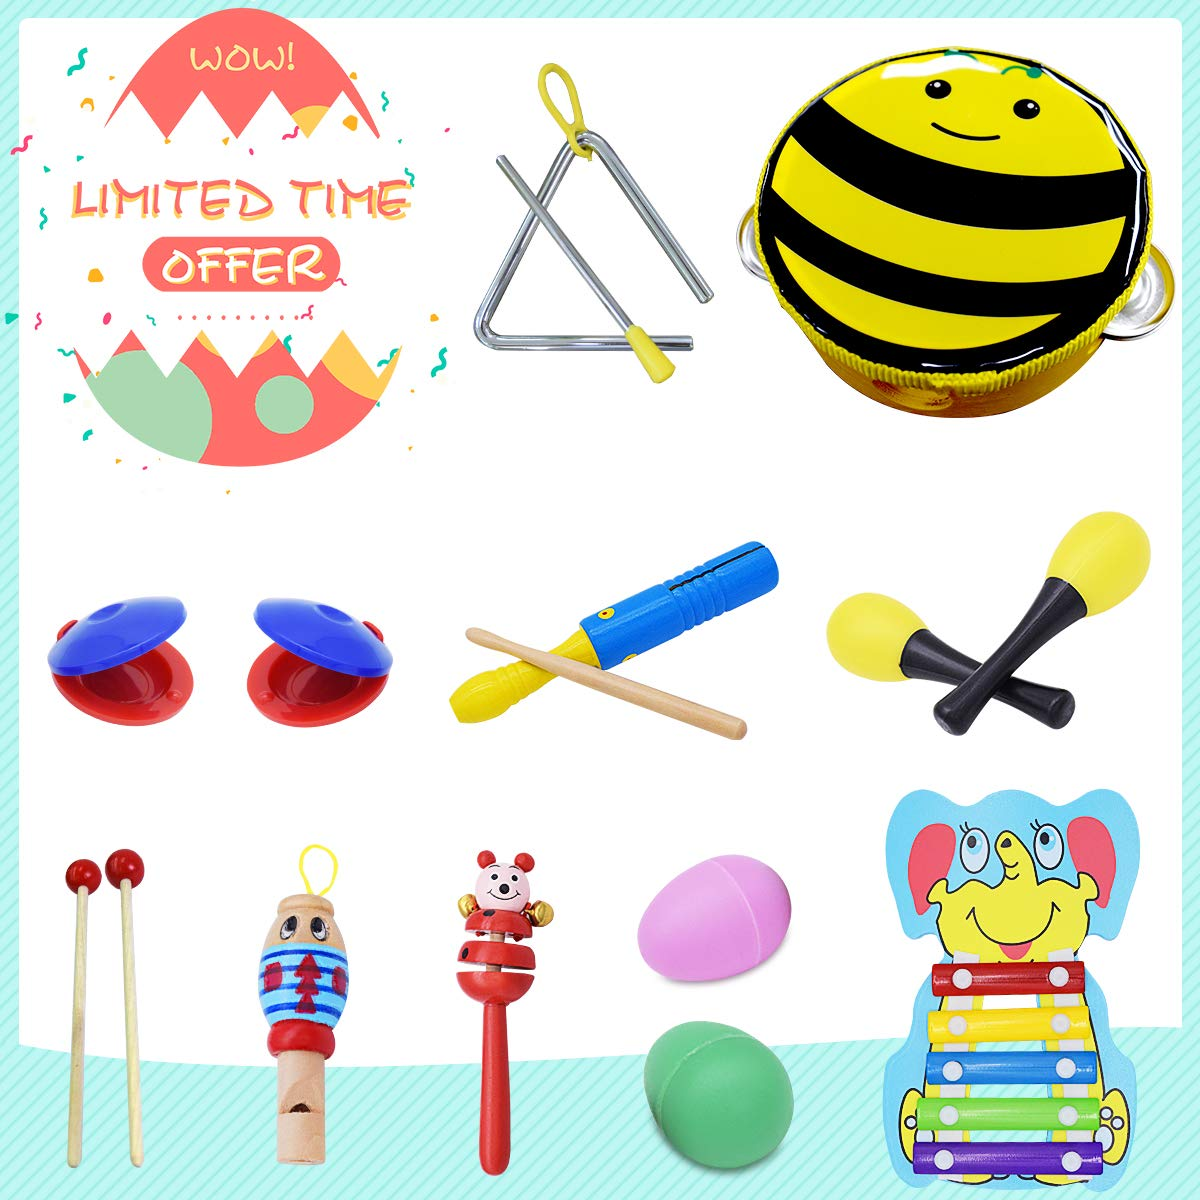 FRUITEAM Wooden Percussion Instruments Toy, Musical Instruments set, Rhythm Band Set Musical Toys for Baby, The most popular toy for children